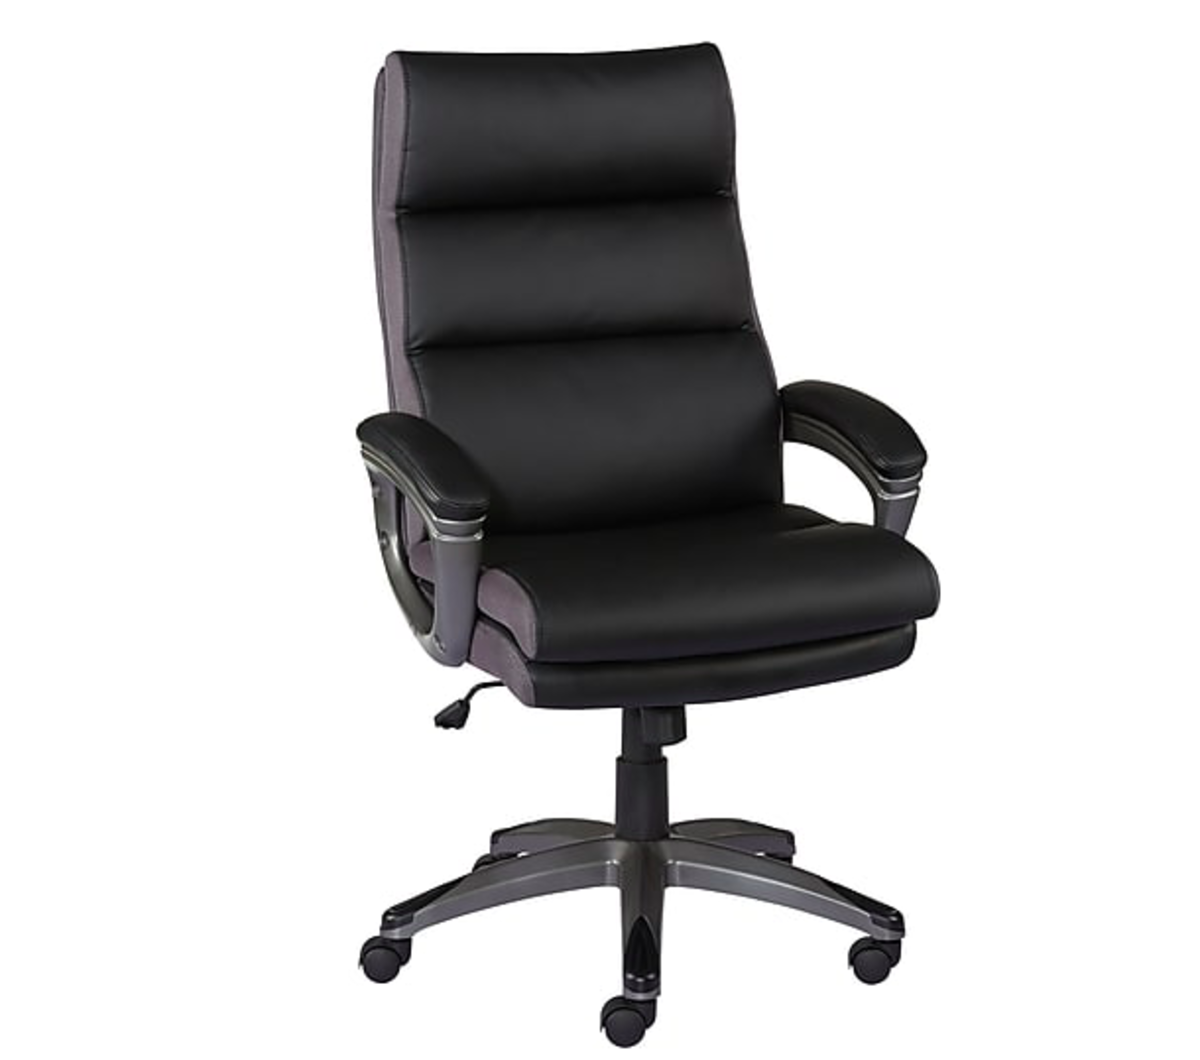 Staples Desk Chair Leather Chair Makeover Office Chair Dining Chair Slipcovers